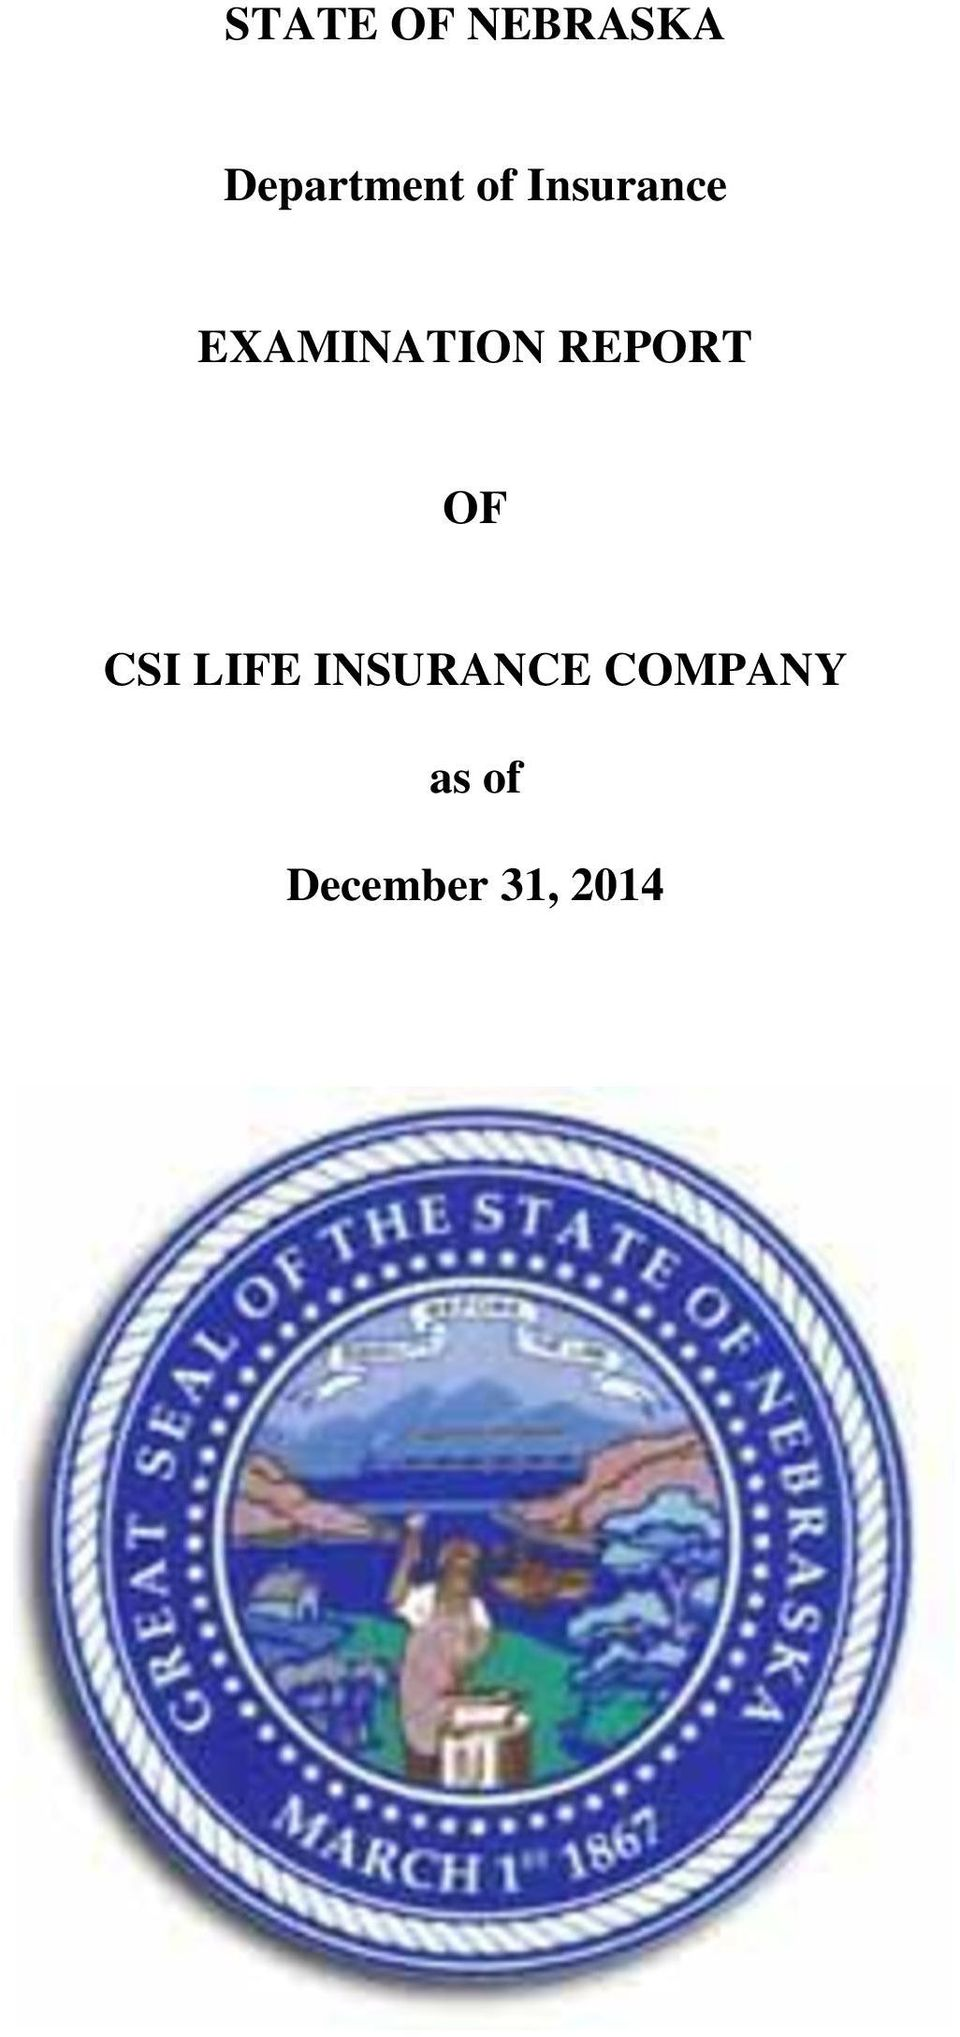 REPORT OF CSI LIFE INSURANCE